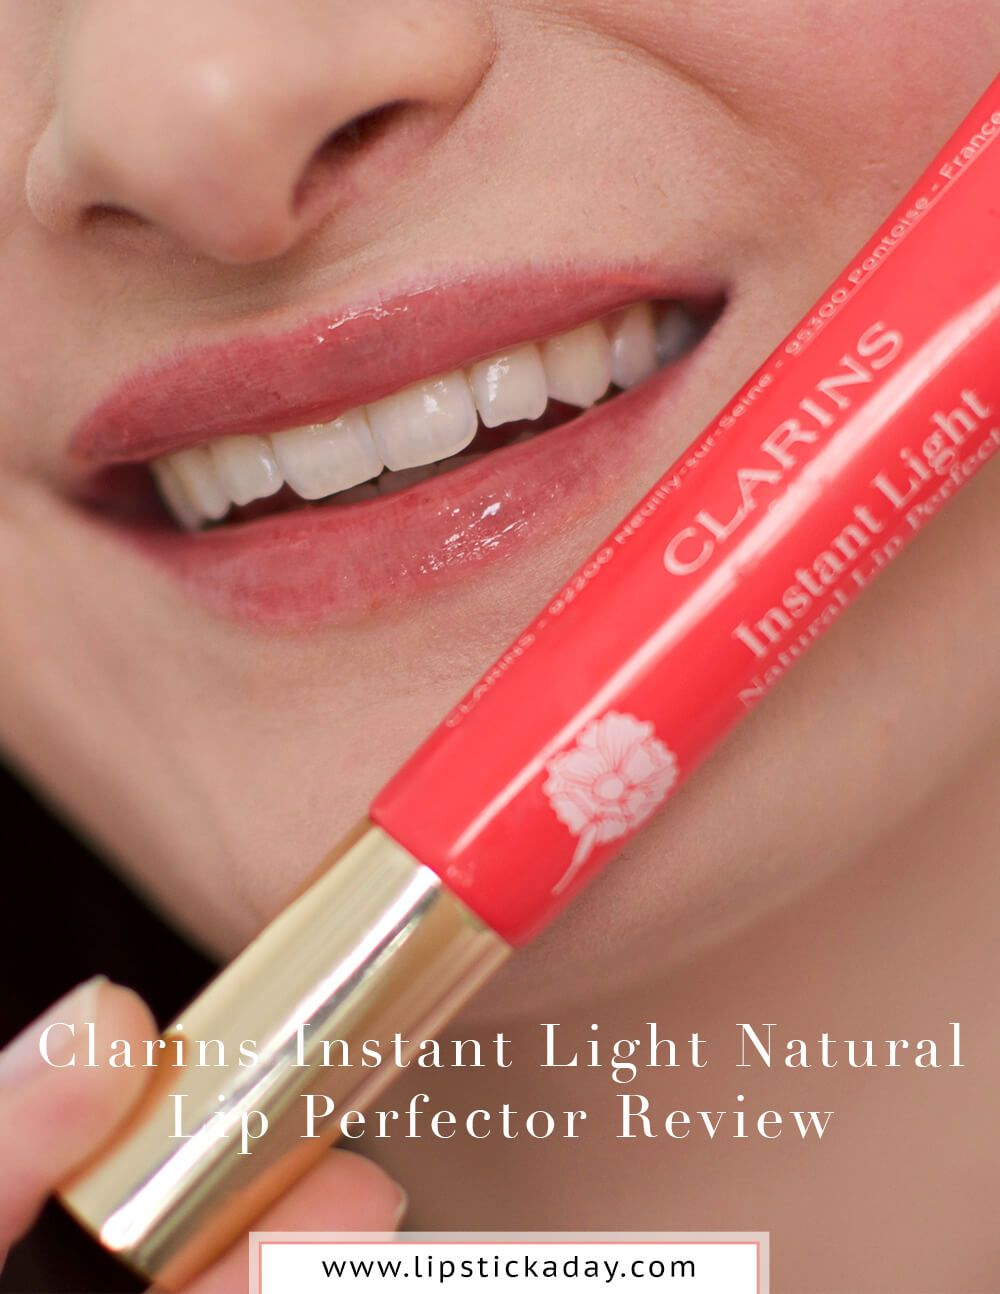 clarins instant light natural lip